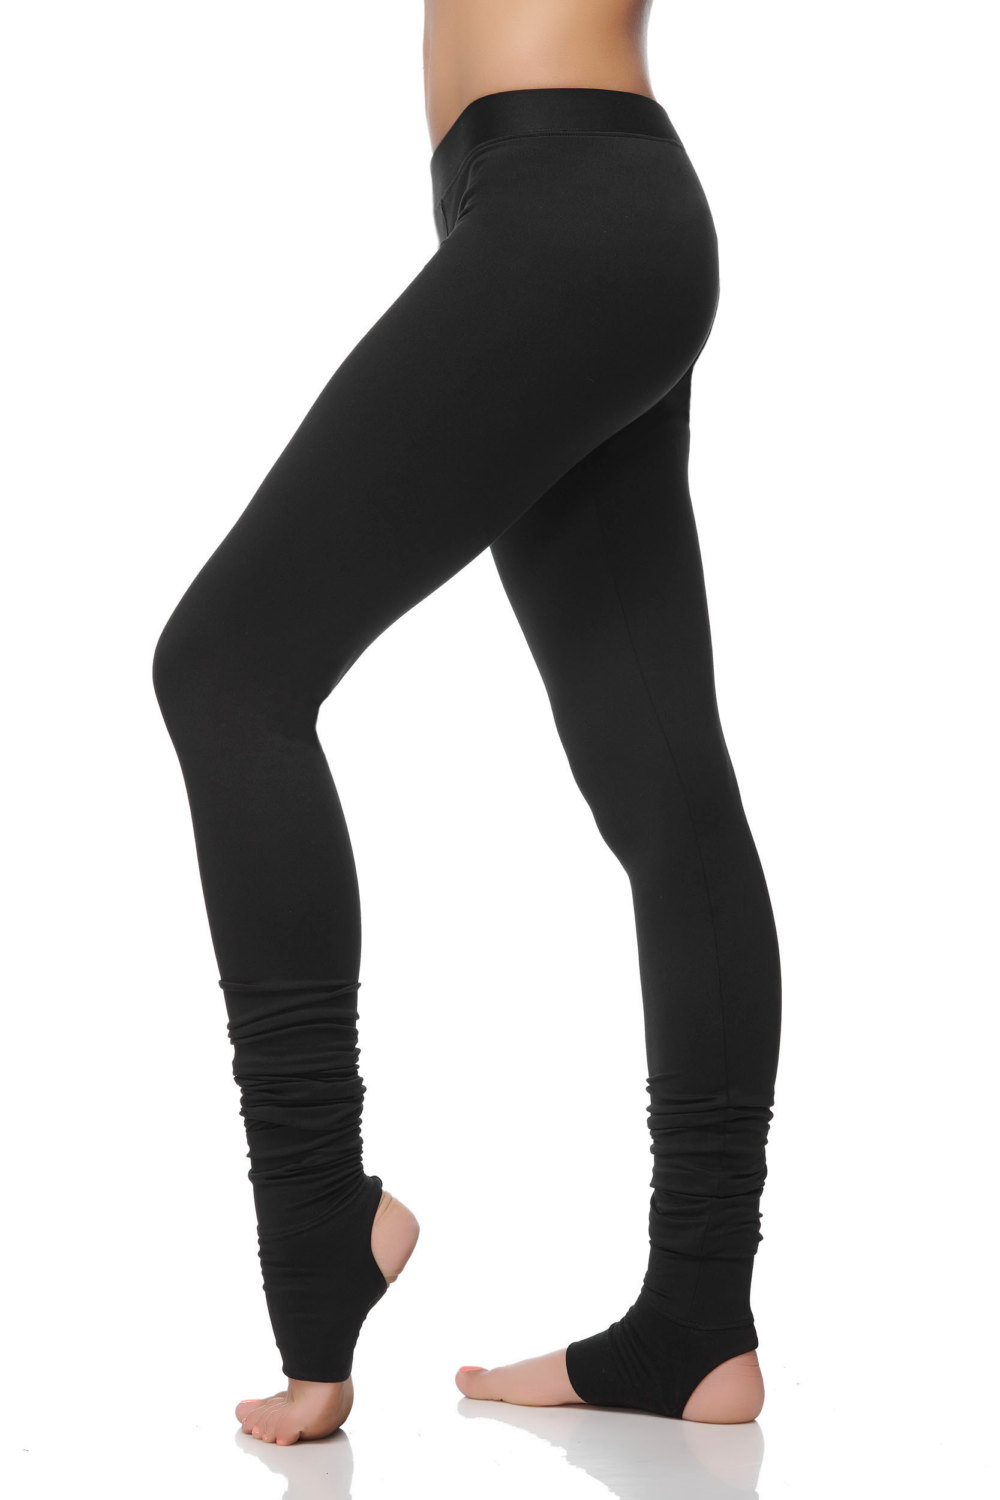 Extra Long Yoga Leggings Special Leggings With Spats